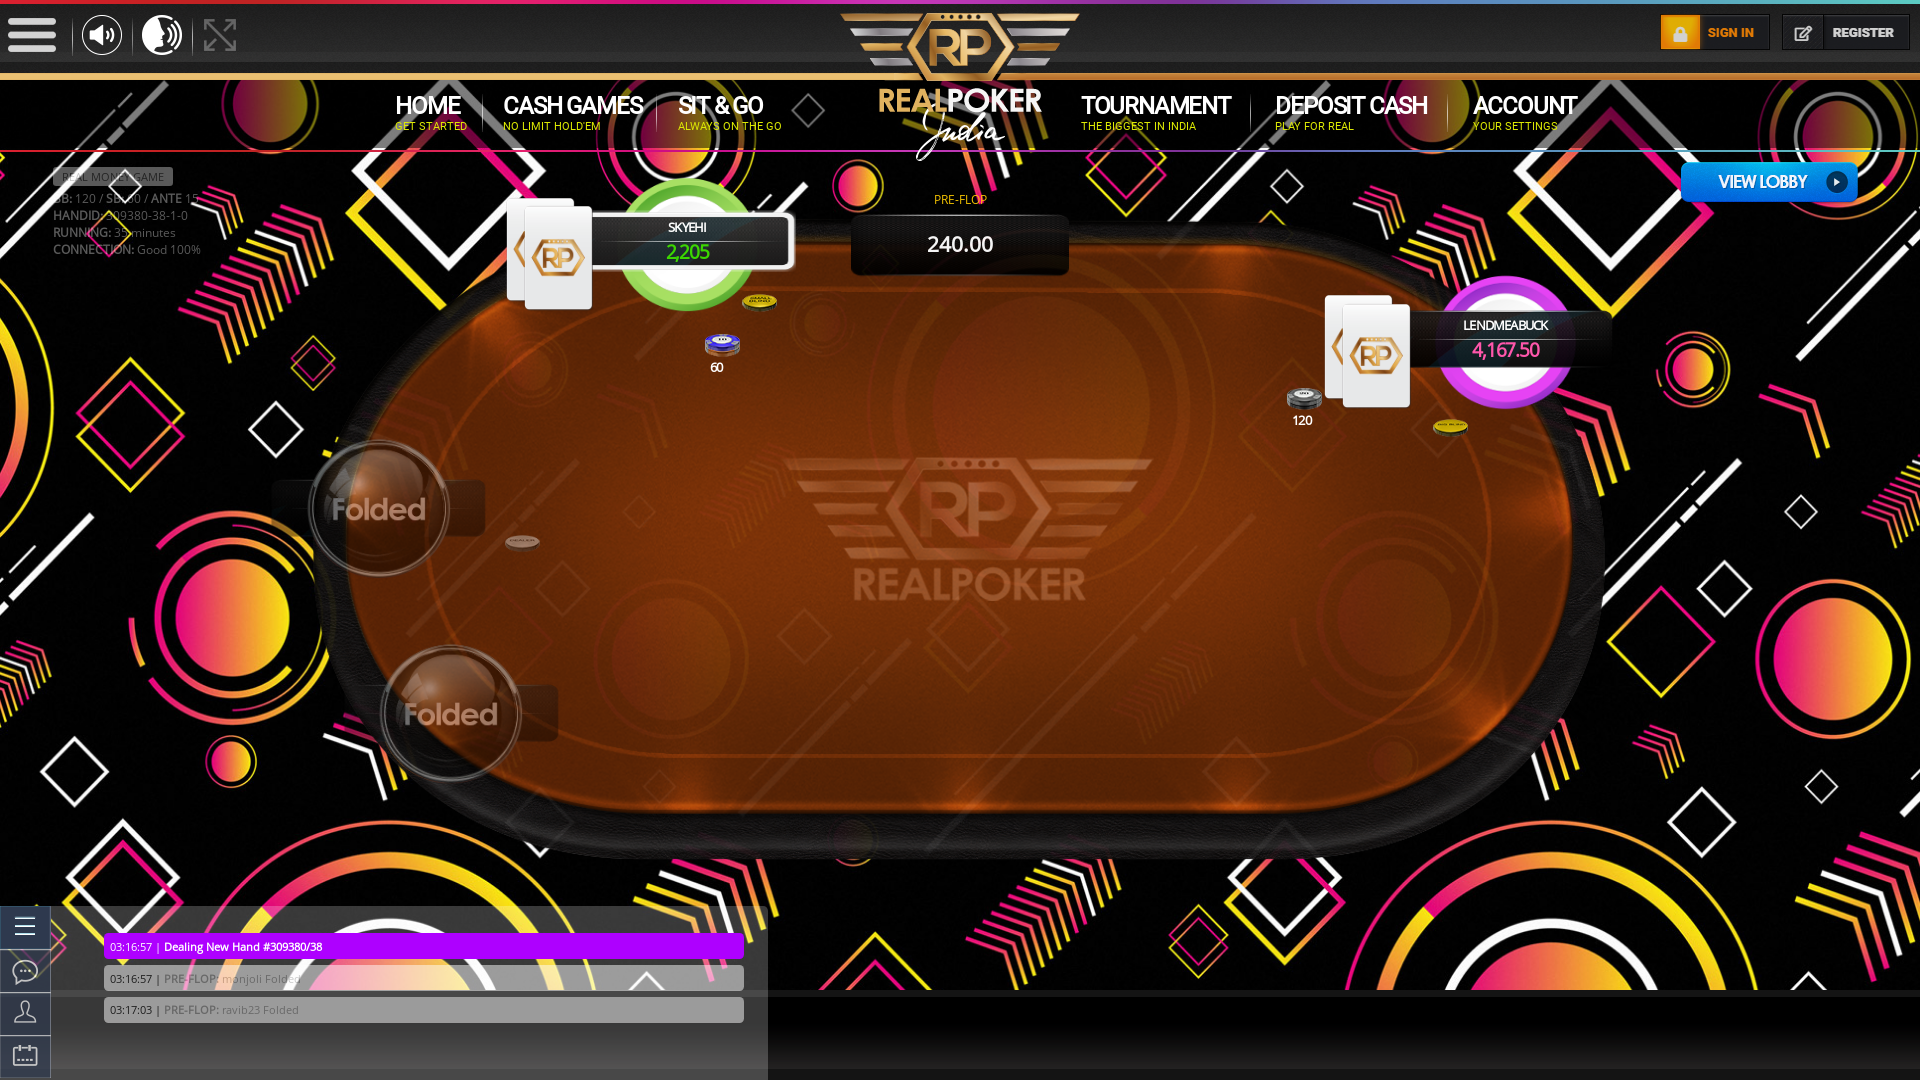 Real poker 10 player table in the 35th minute